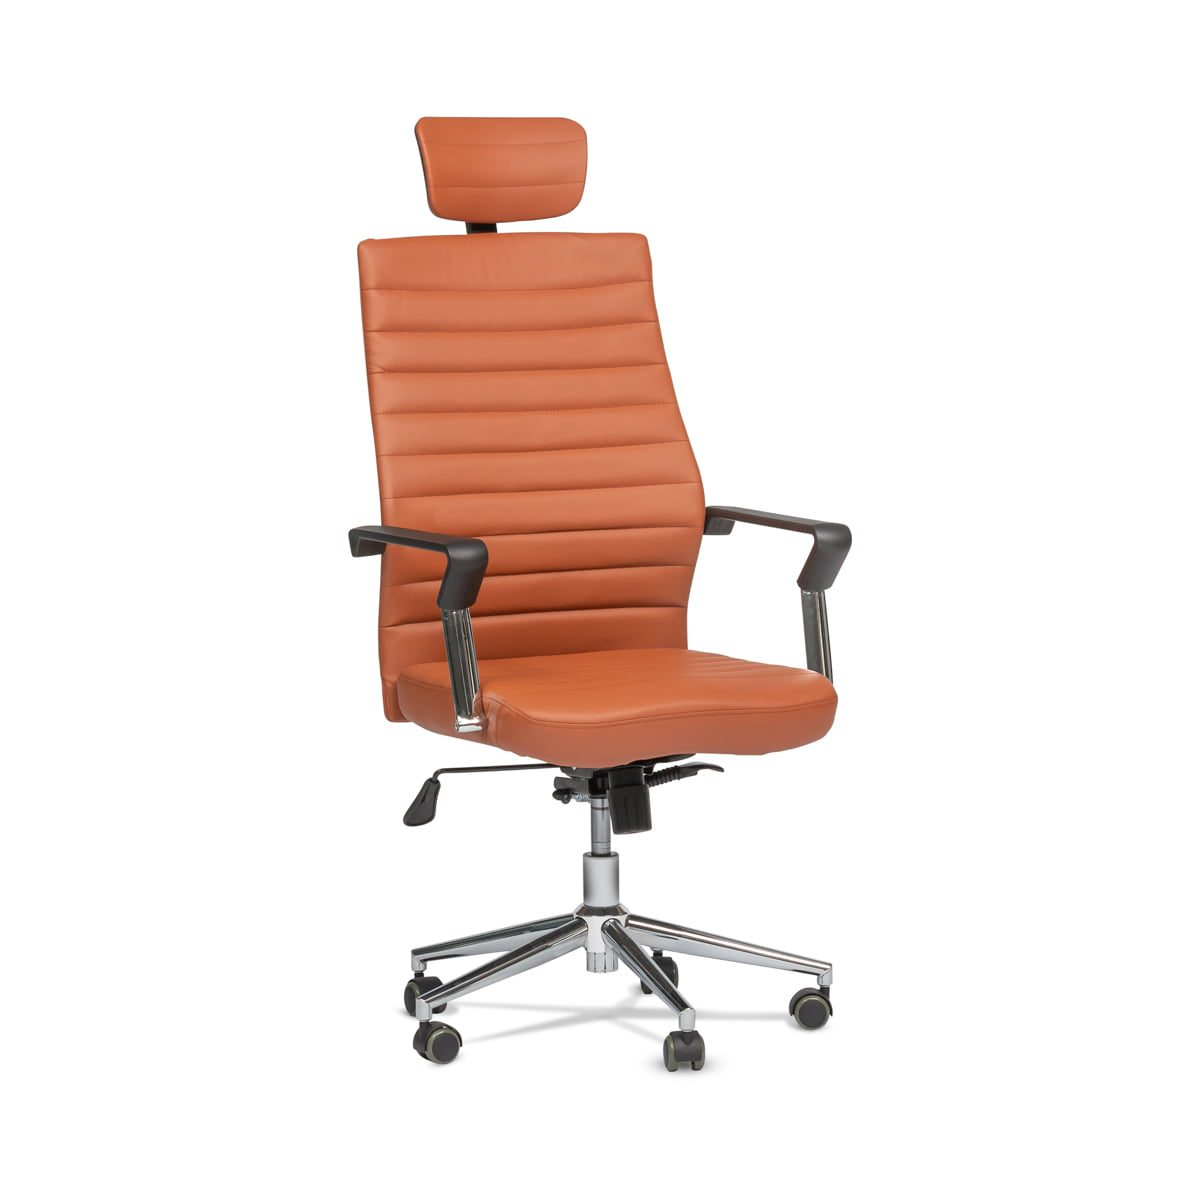 Flesk office Chair High Back